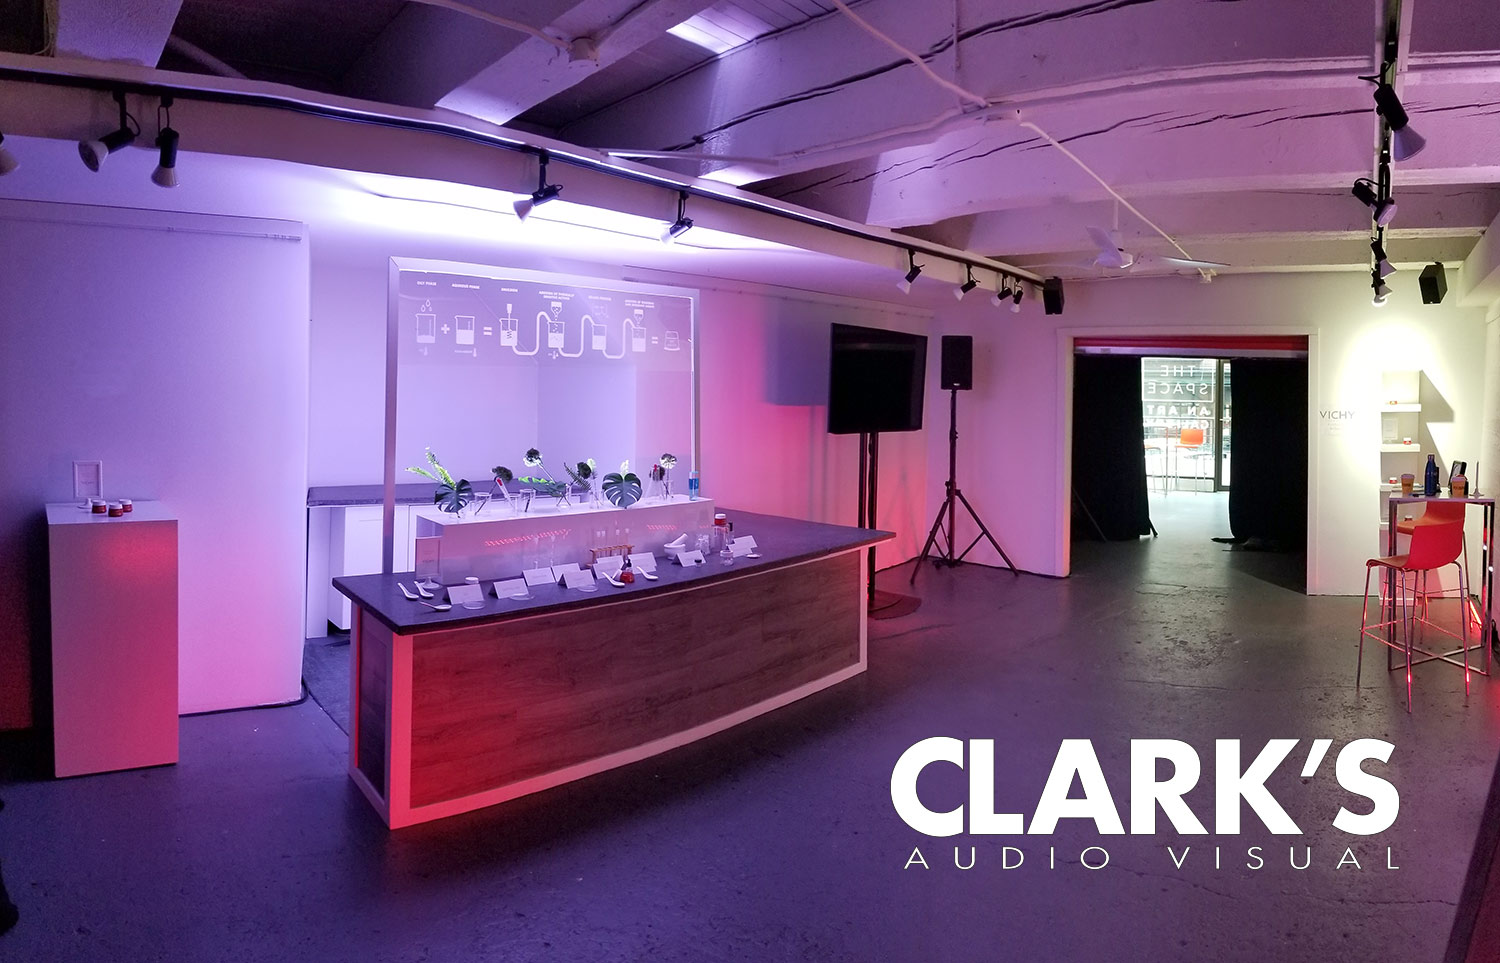 Clark's Audio Visual